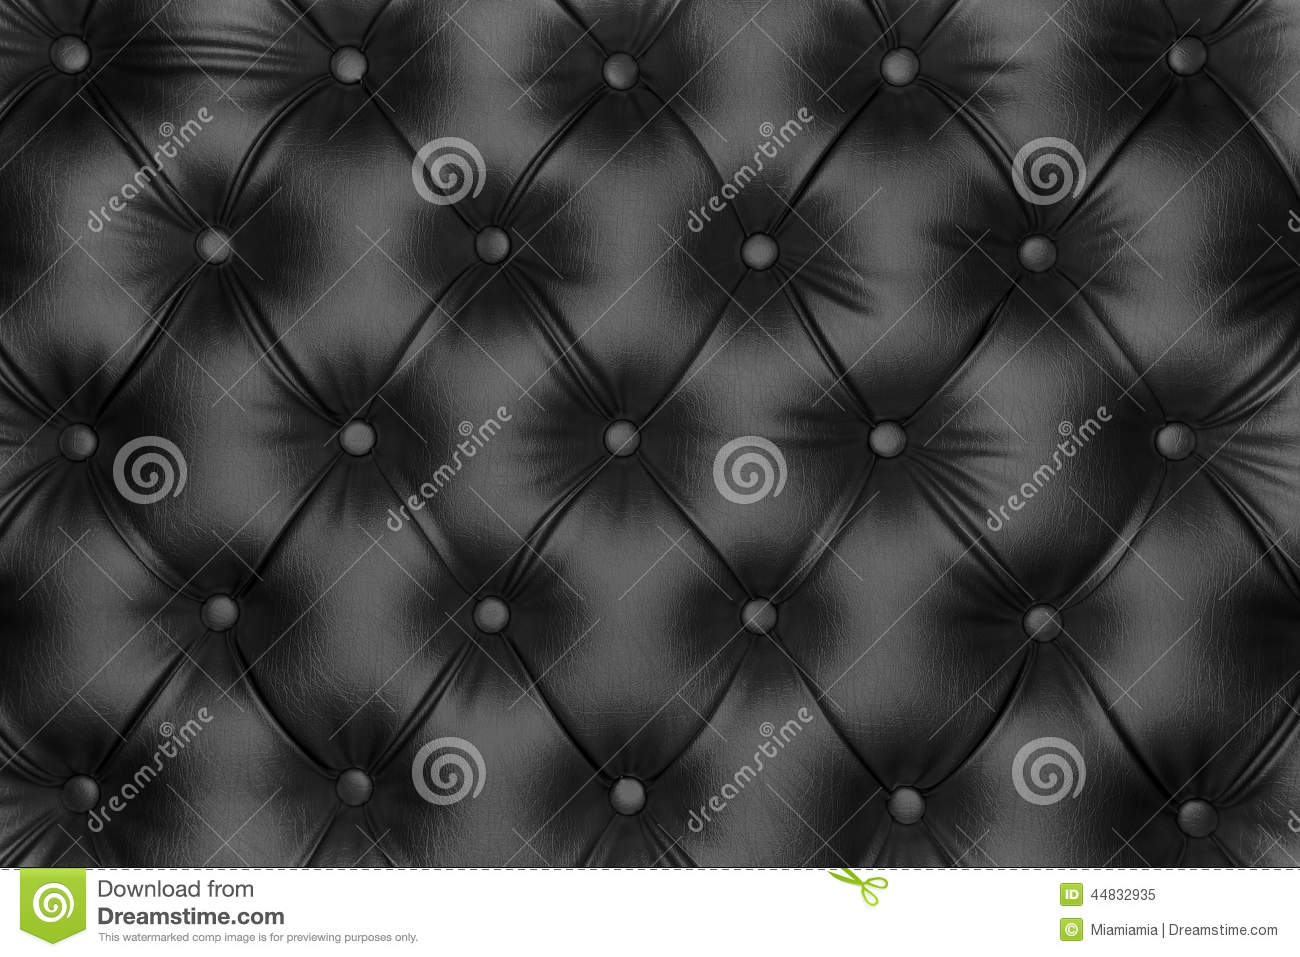 Black leather chair texture - Luxurious Black Leather Texture Royalty Free Stock Photo